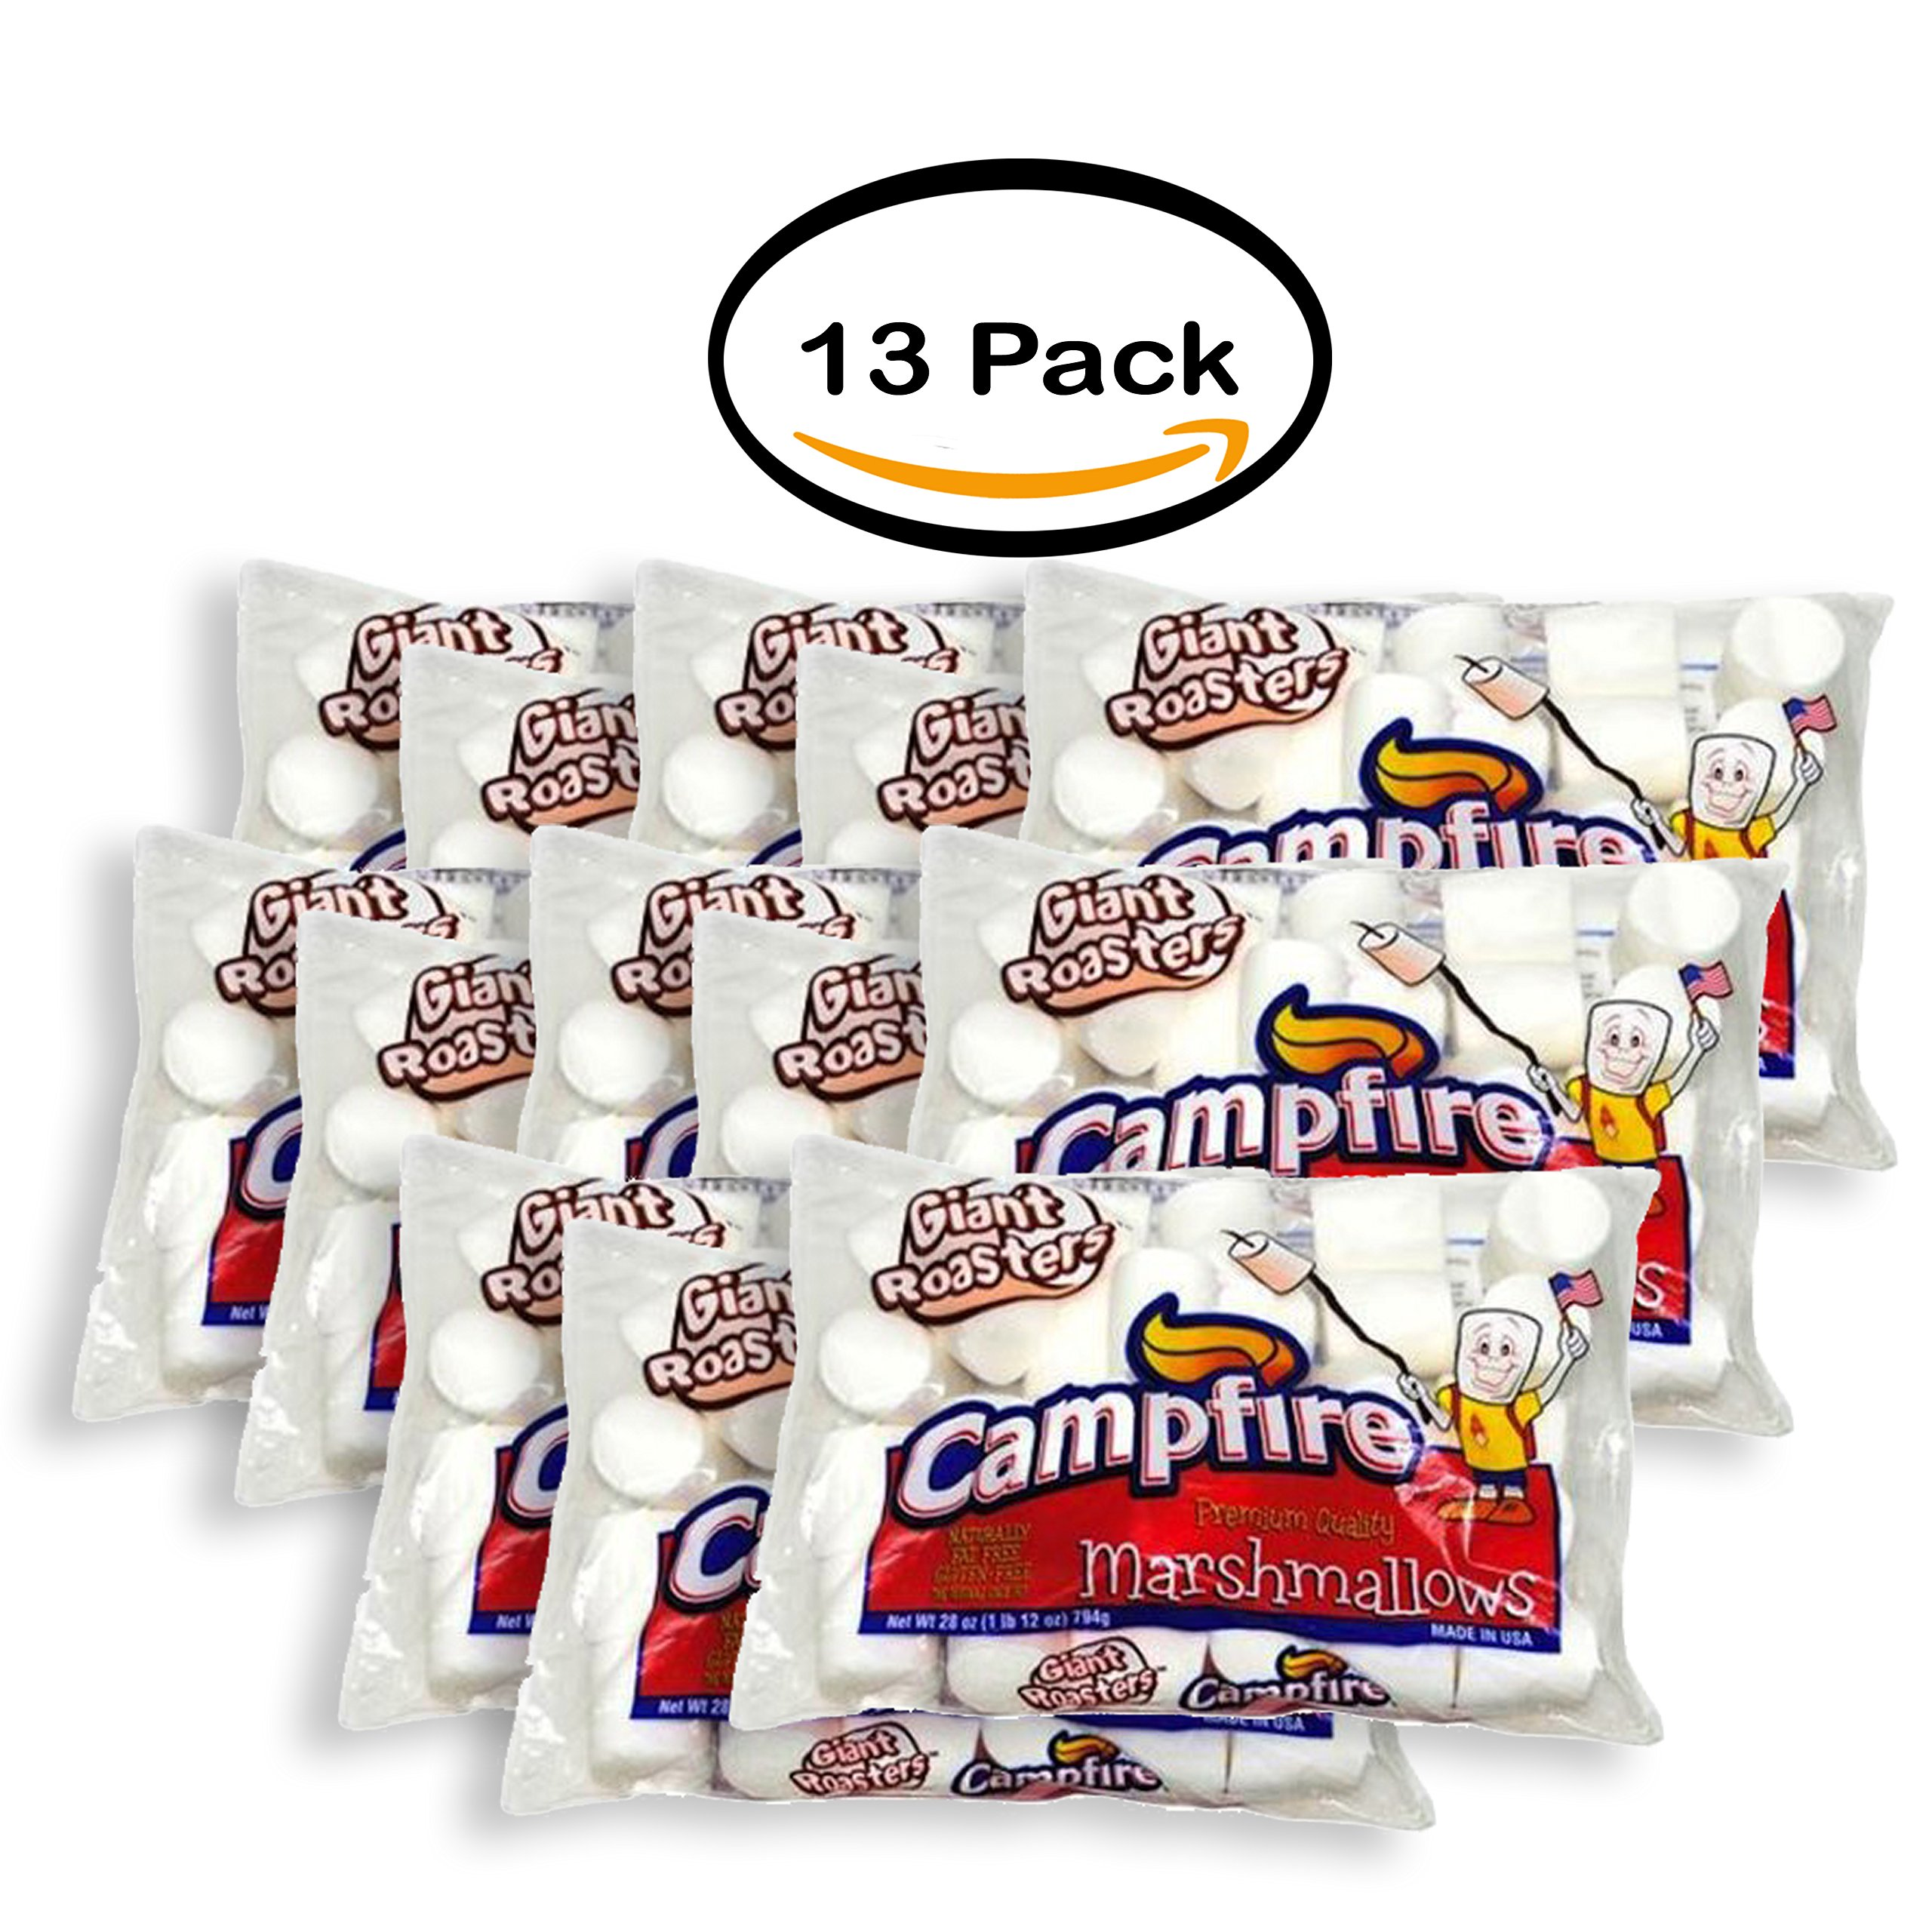 PACK OF 13 - Campfire Giant Roaster Marshmallow, 28 Ounce